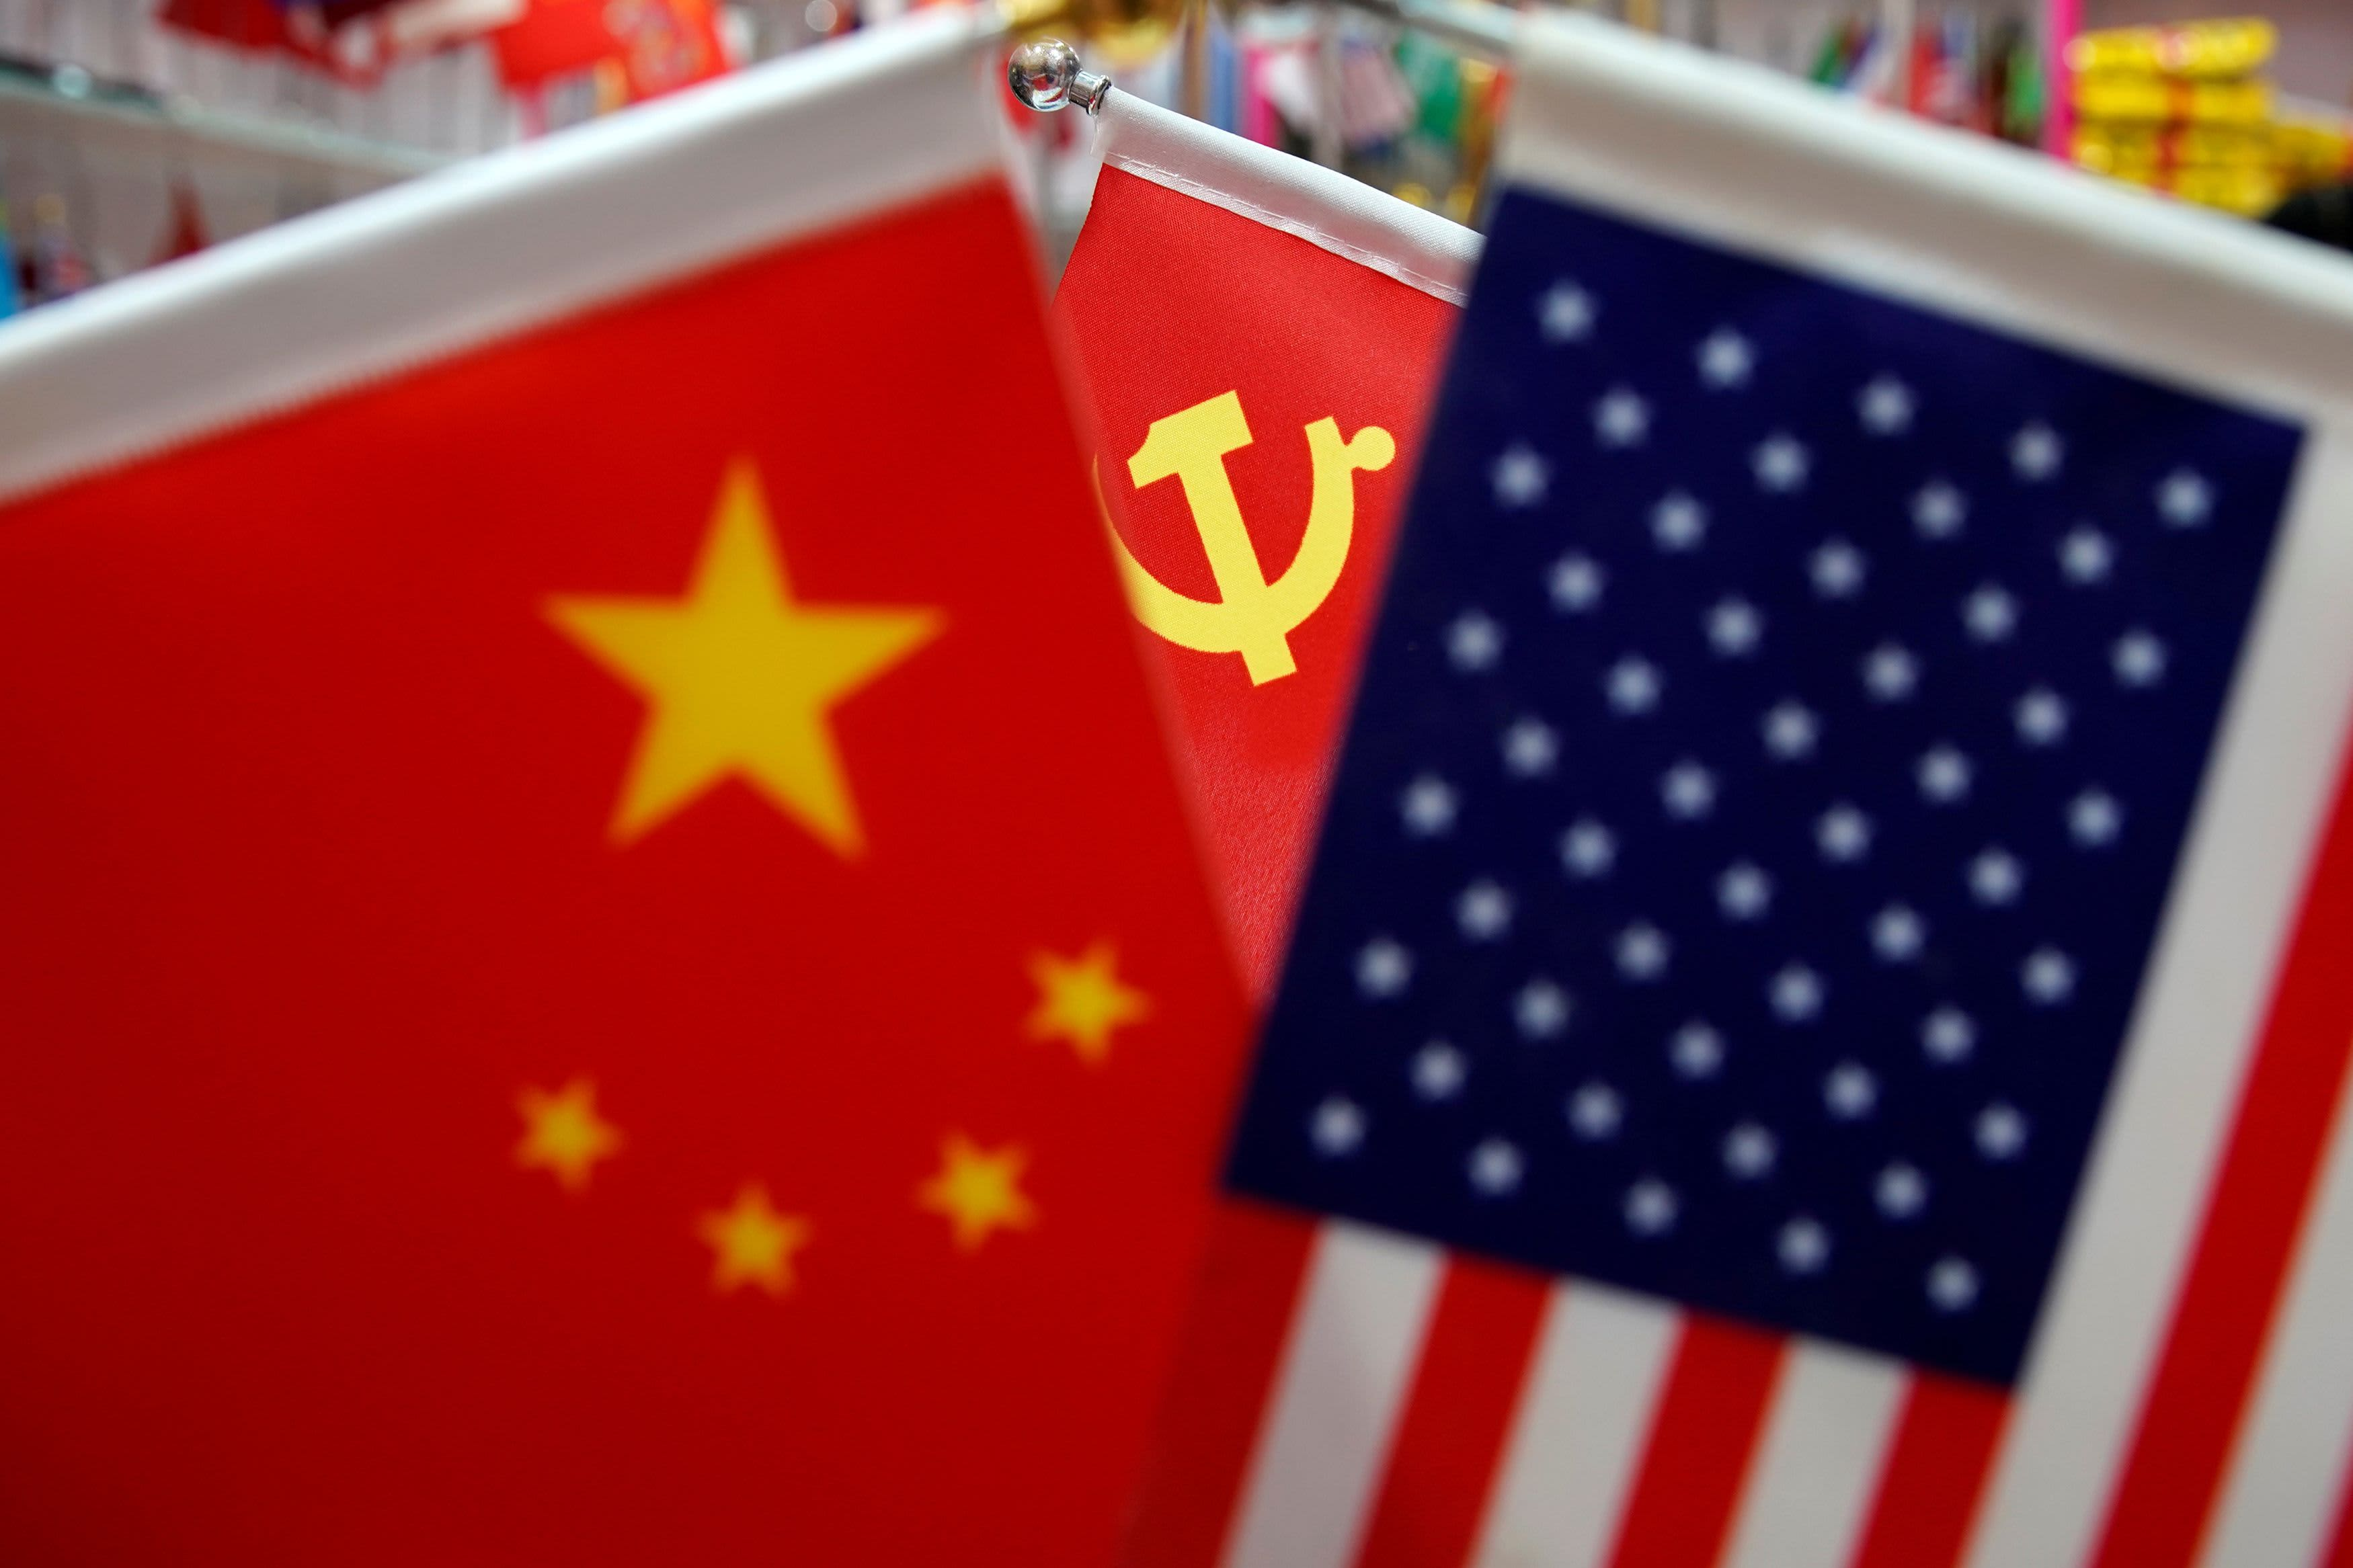 Chinese Foreign Minister Takes Firm Tone, Calls for 'Non-Interference' Between China and the U.S. – NBC Chicago